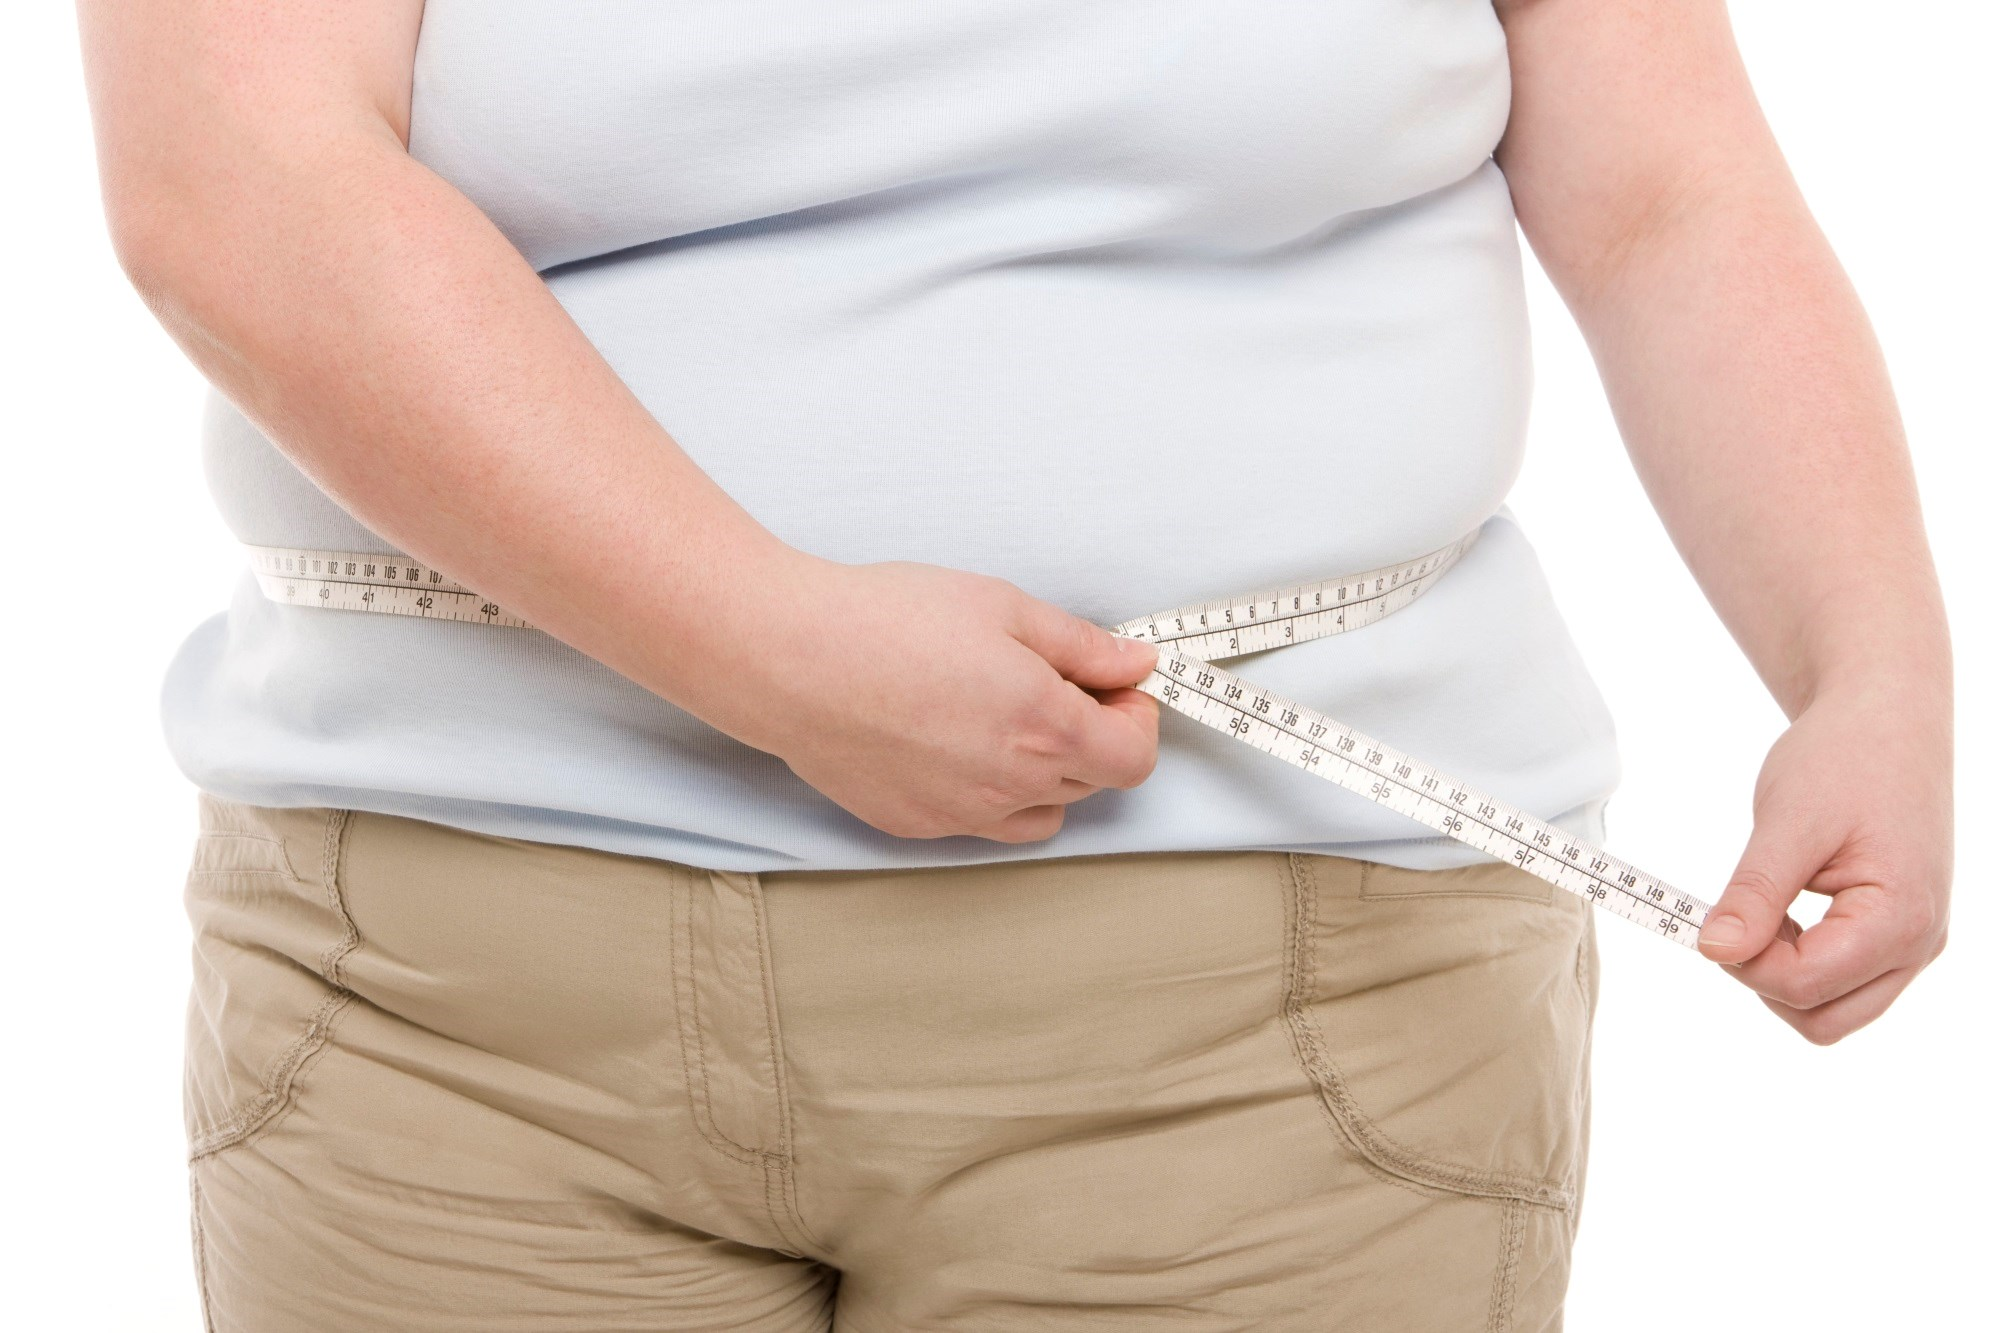 Attitudes Among Obese Are Not Aligned With Healthy Living